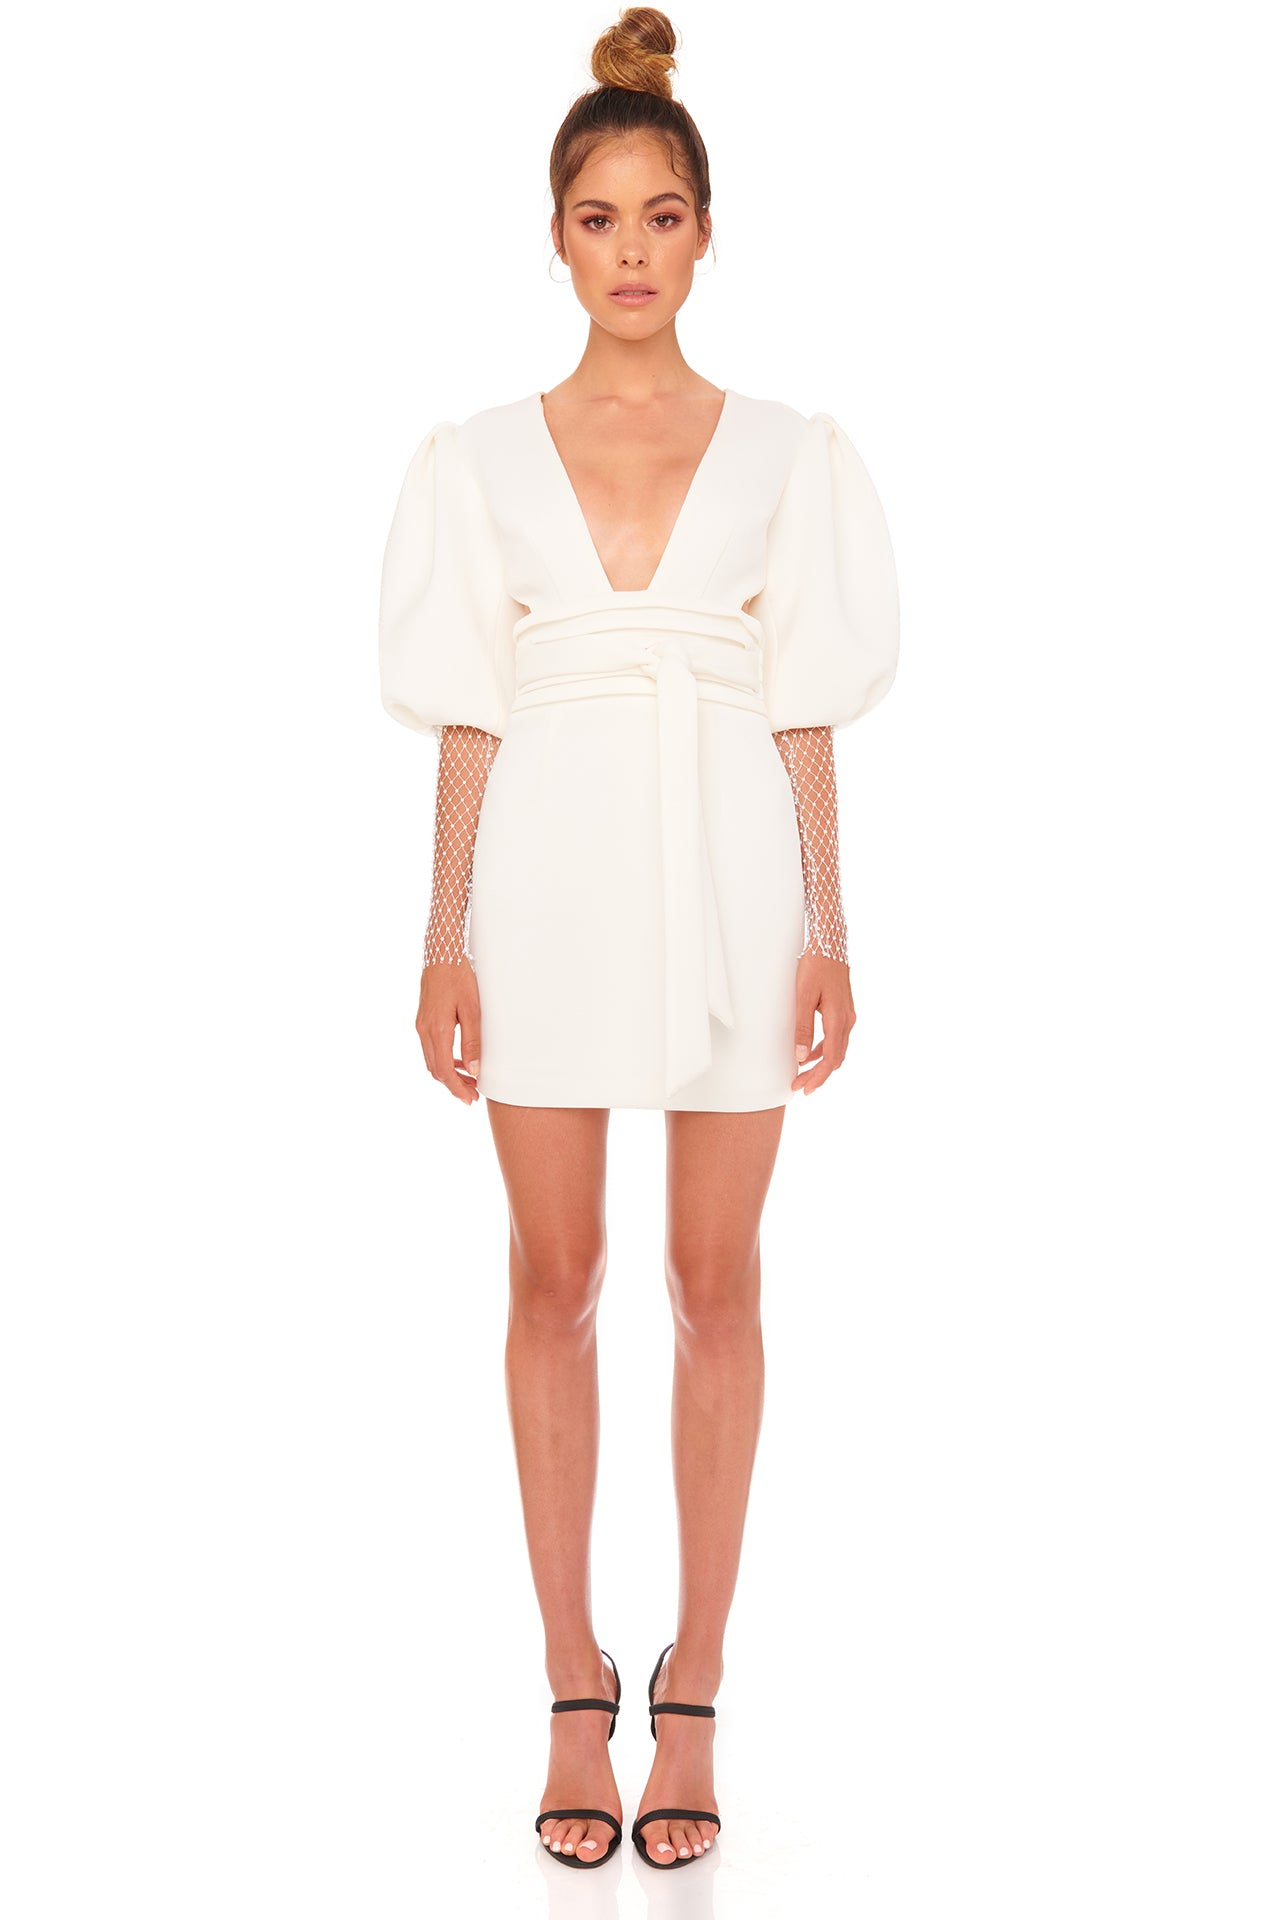 Gravity Dress | White